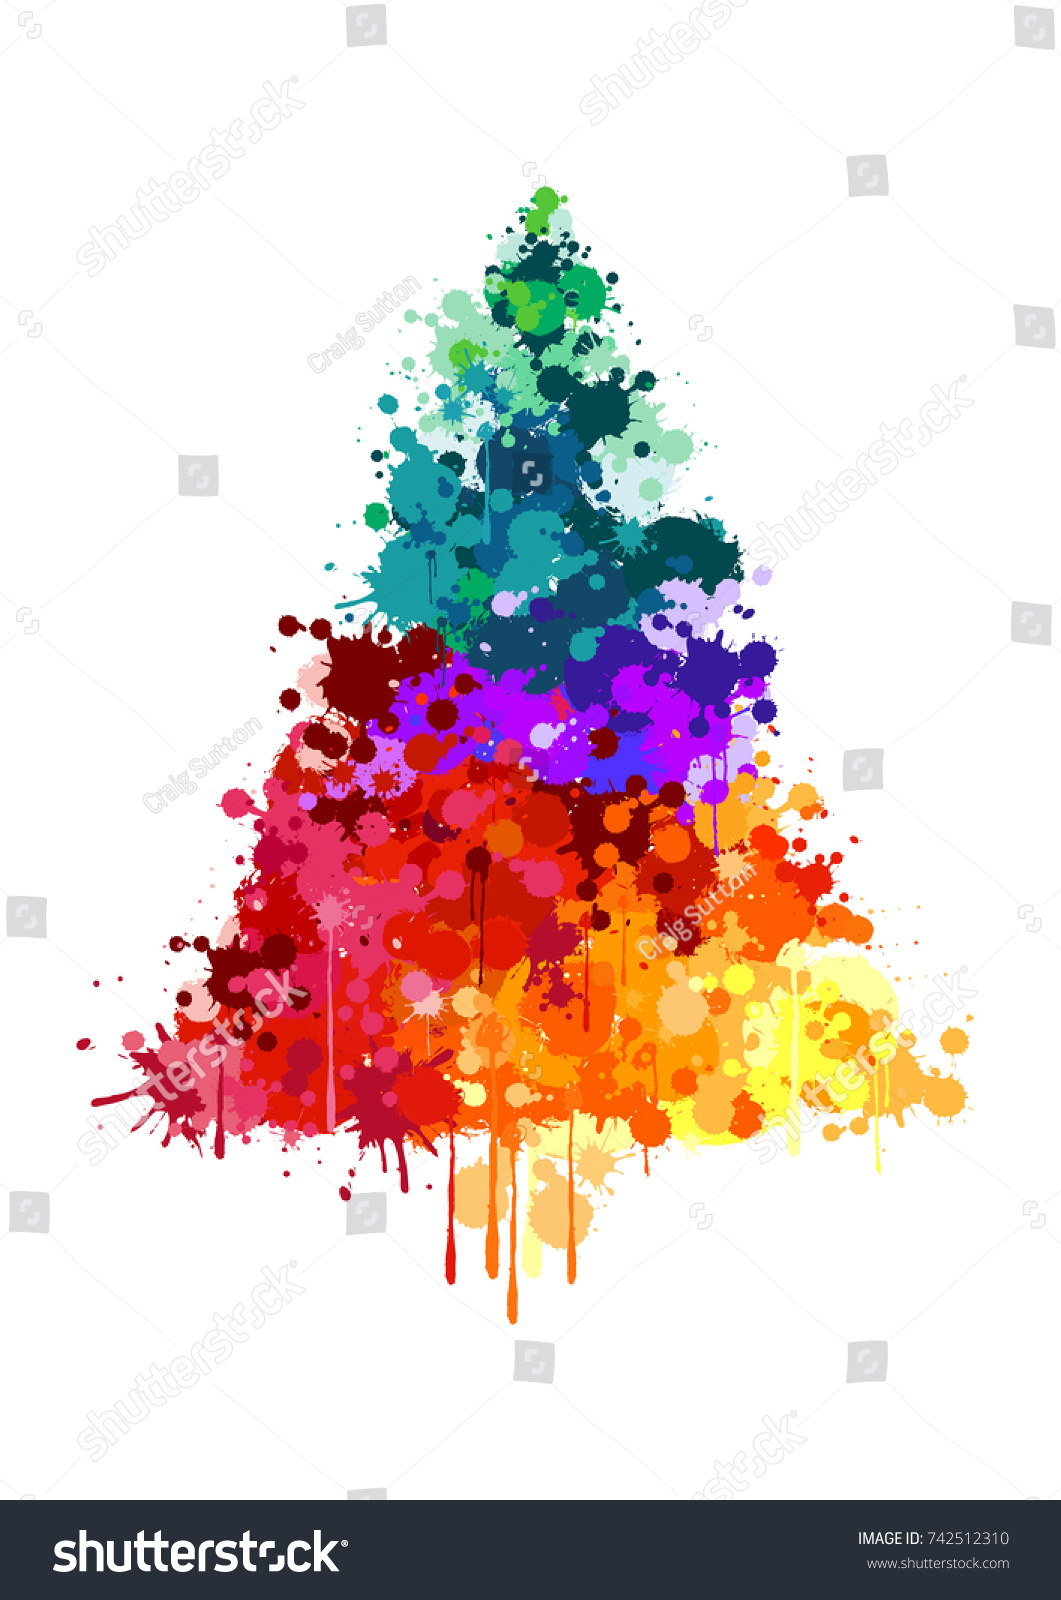 paint splatter christmas tree - How To Paint A Christmas Tree